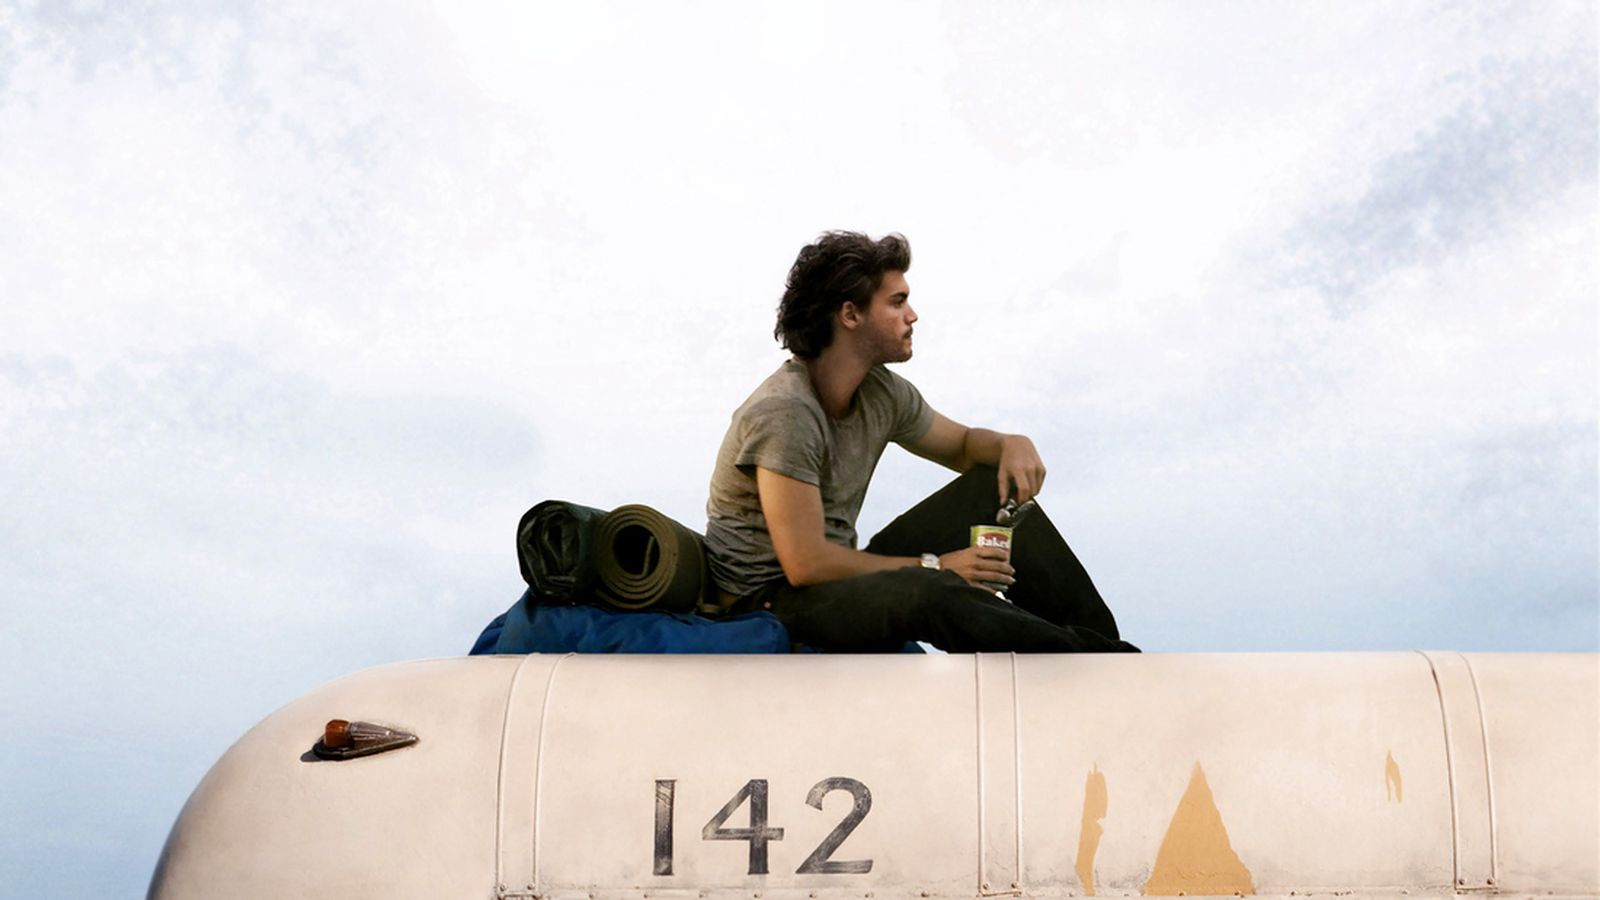 Into The Wild Book Quotes Into The Wild' Author Reveals That Poisonous Plant Led To Chris